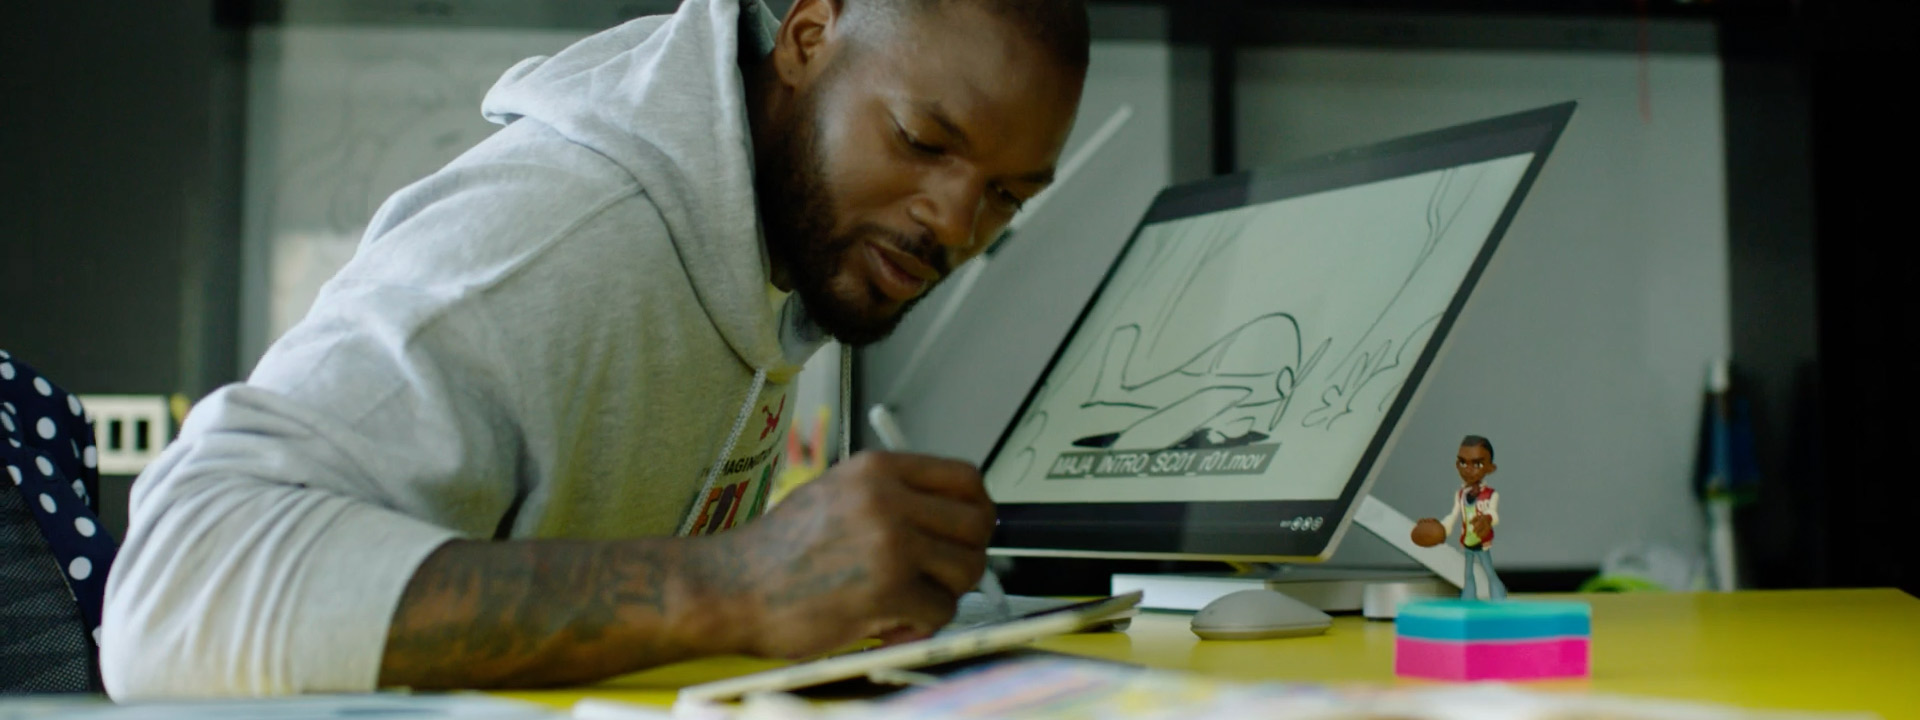 Martellus Bennett creates children's books, apps, and films to inspire youth to pursue creative career paths through the Imagination Agency.